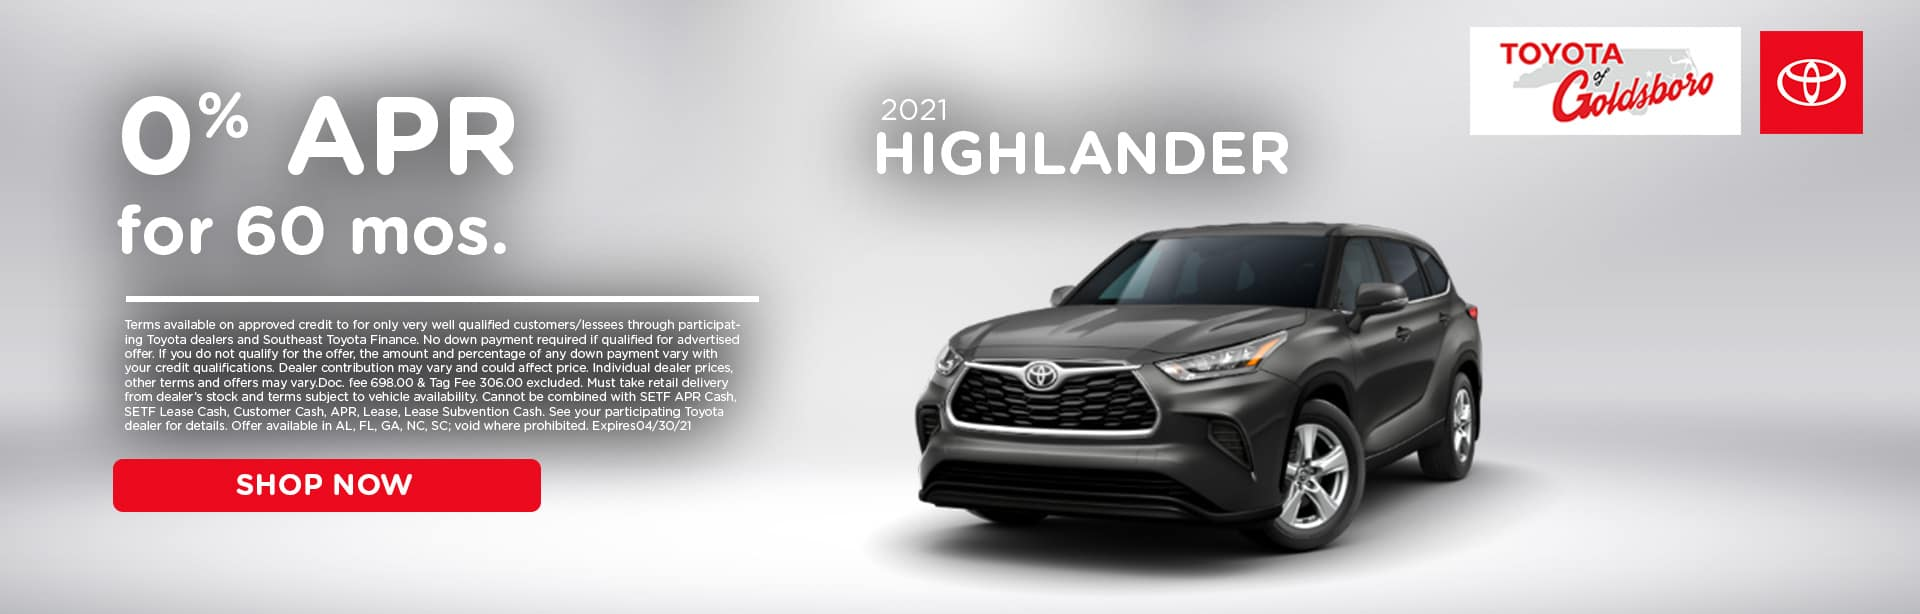 toyota-of-goldsboro-april-highlander-special-banner